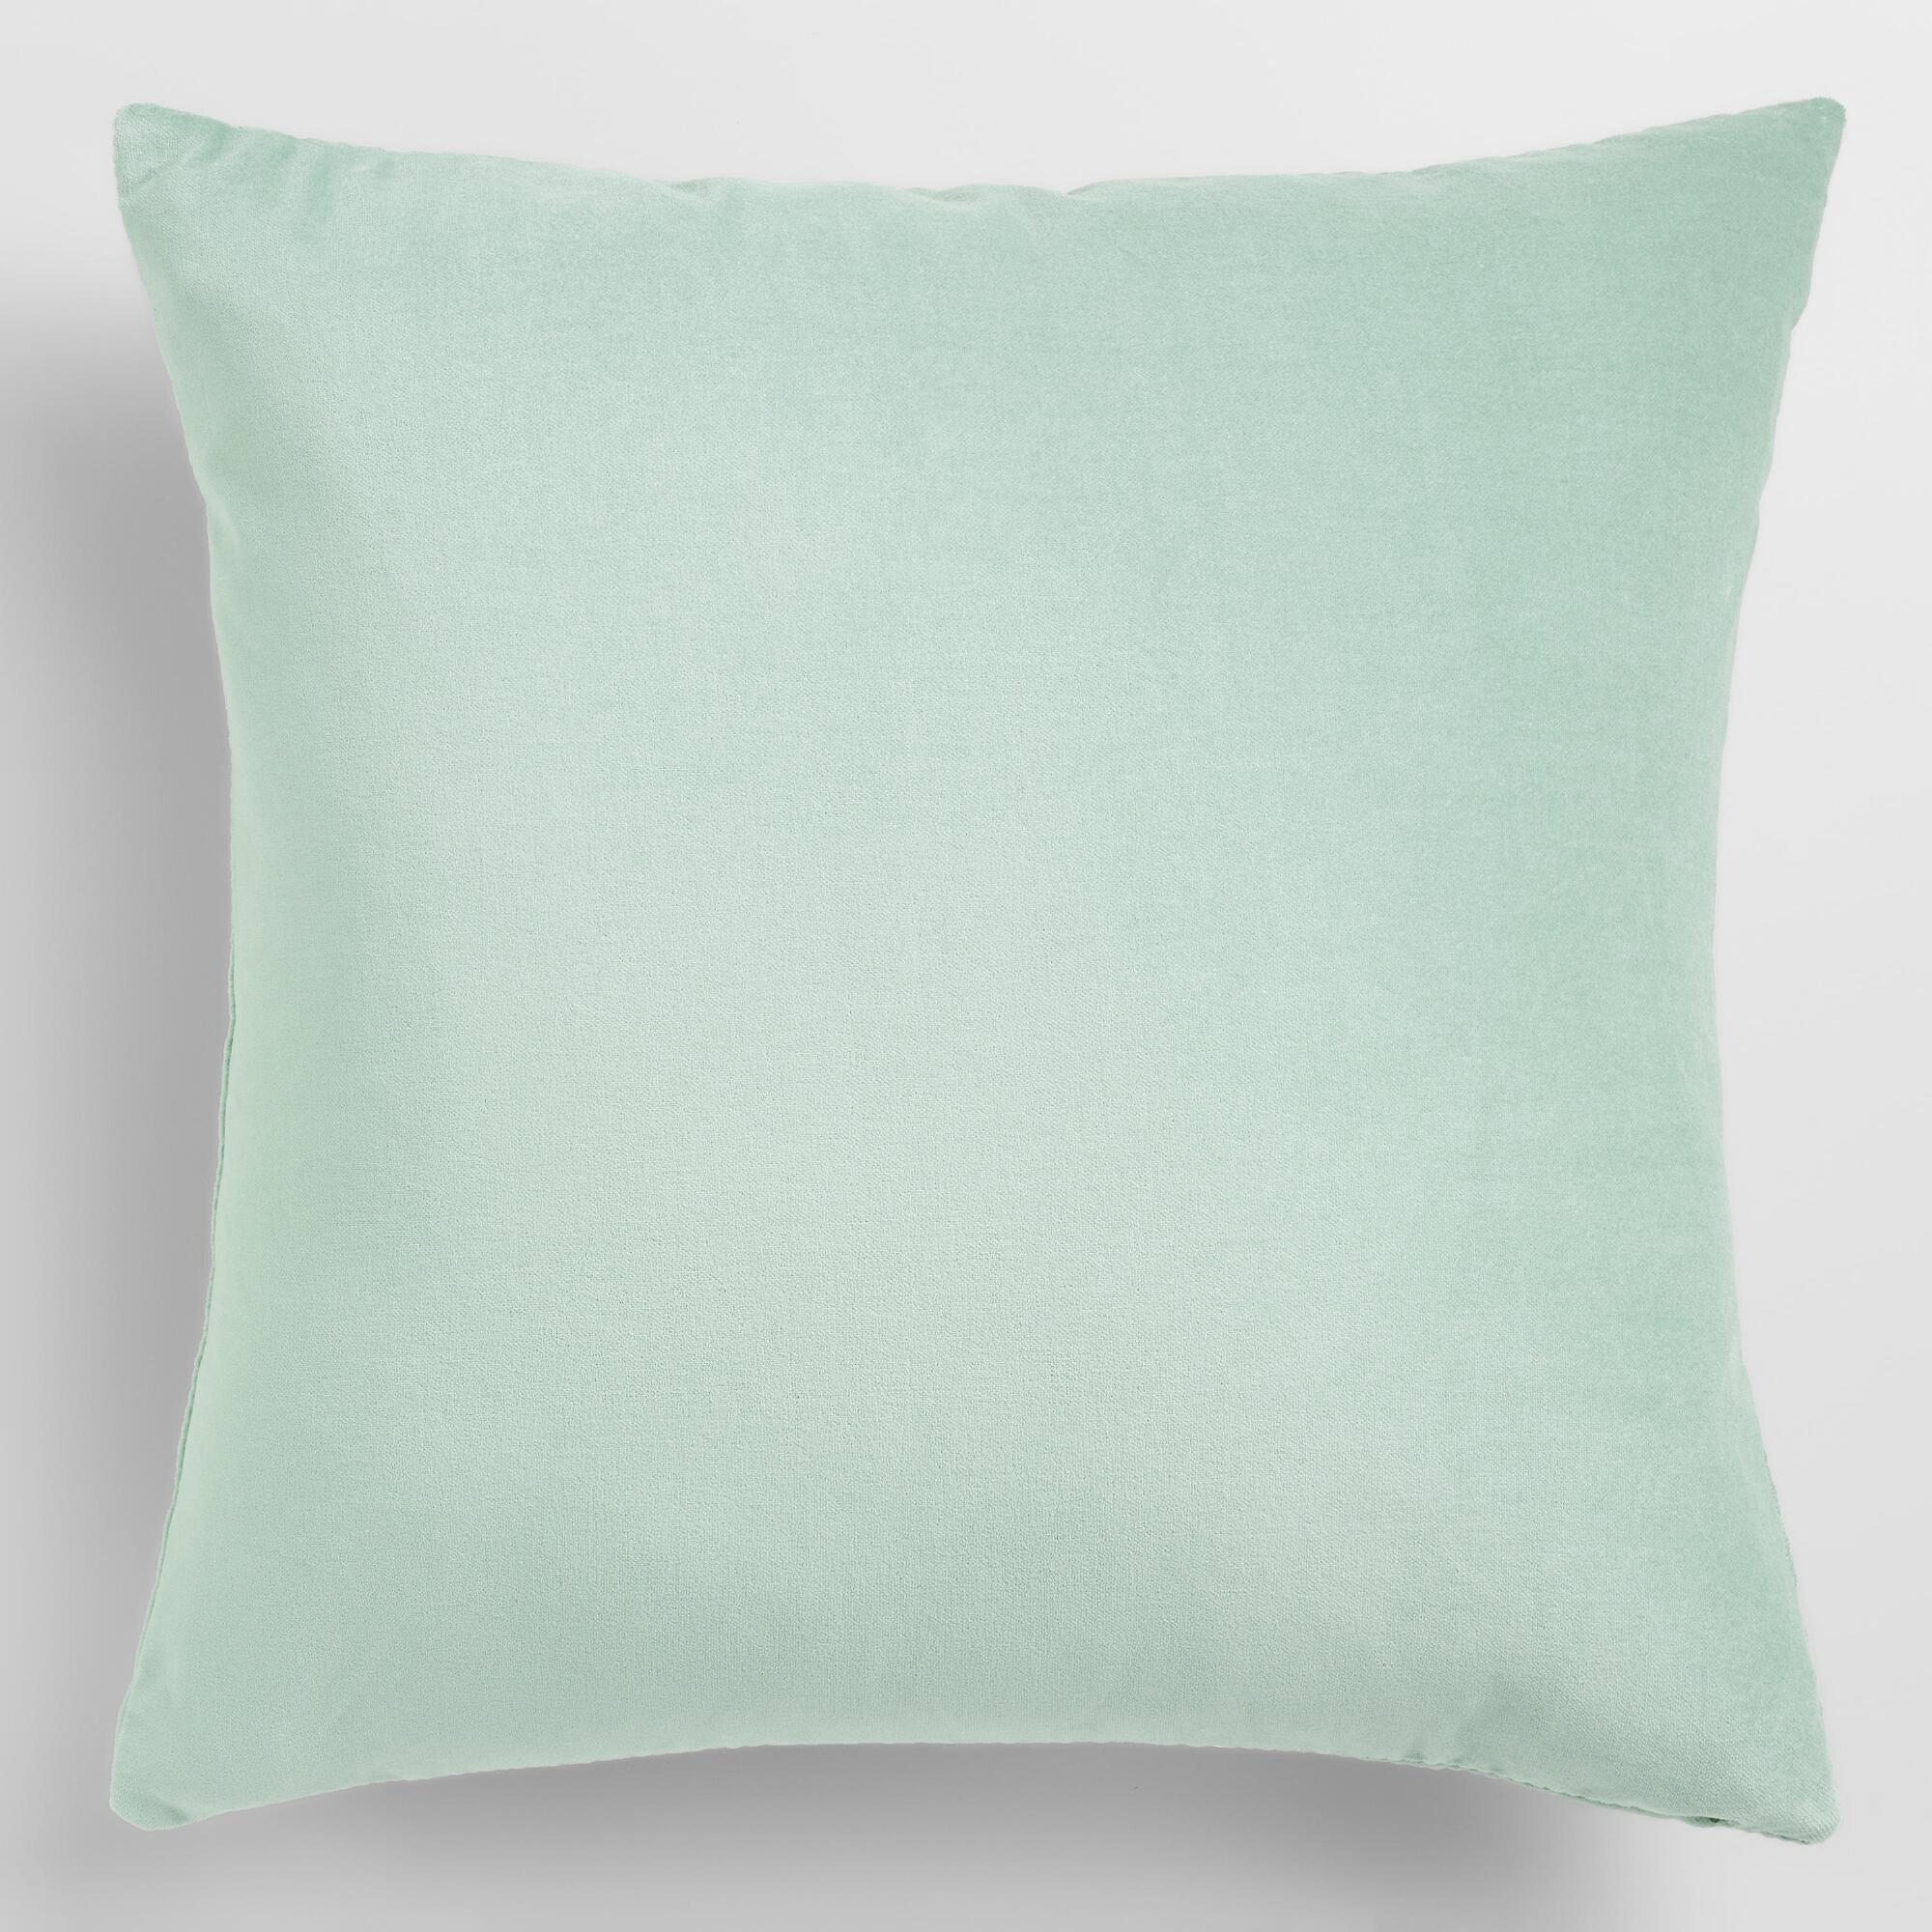 Blue Velvet Throw Pillows : Ocean Blue Velvet Throw Pillow World Market